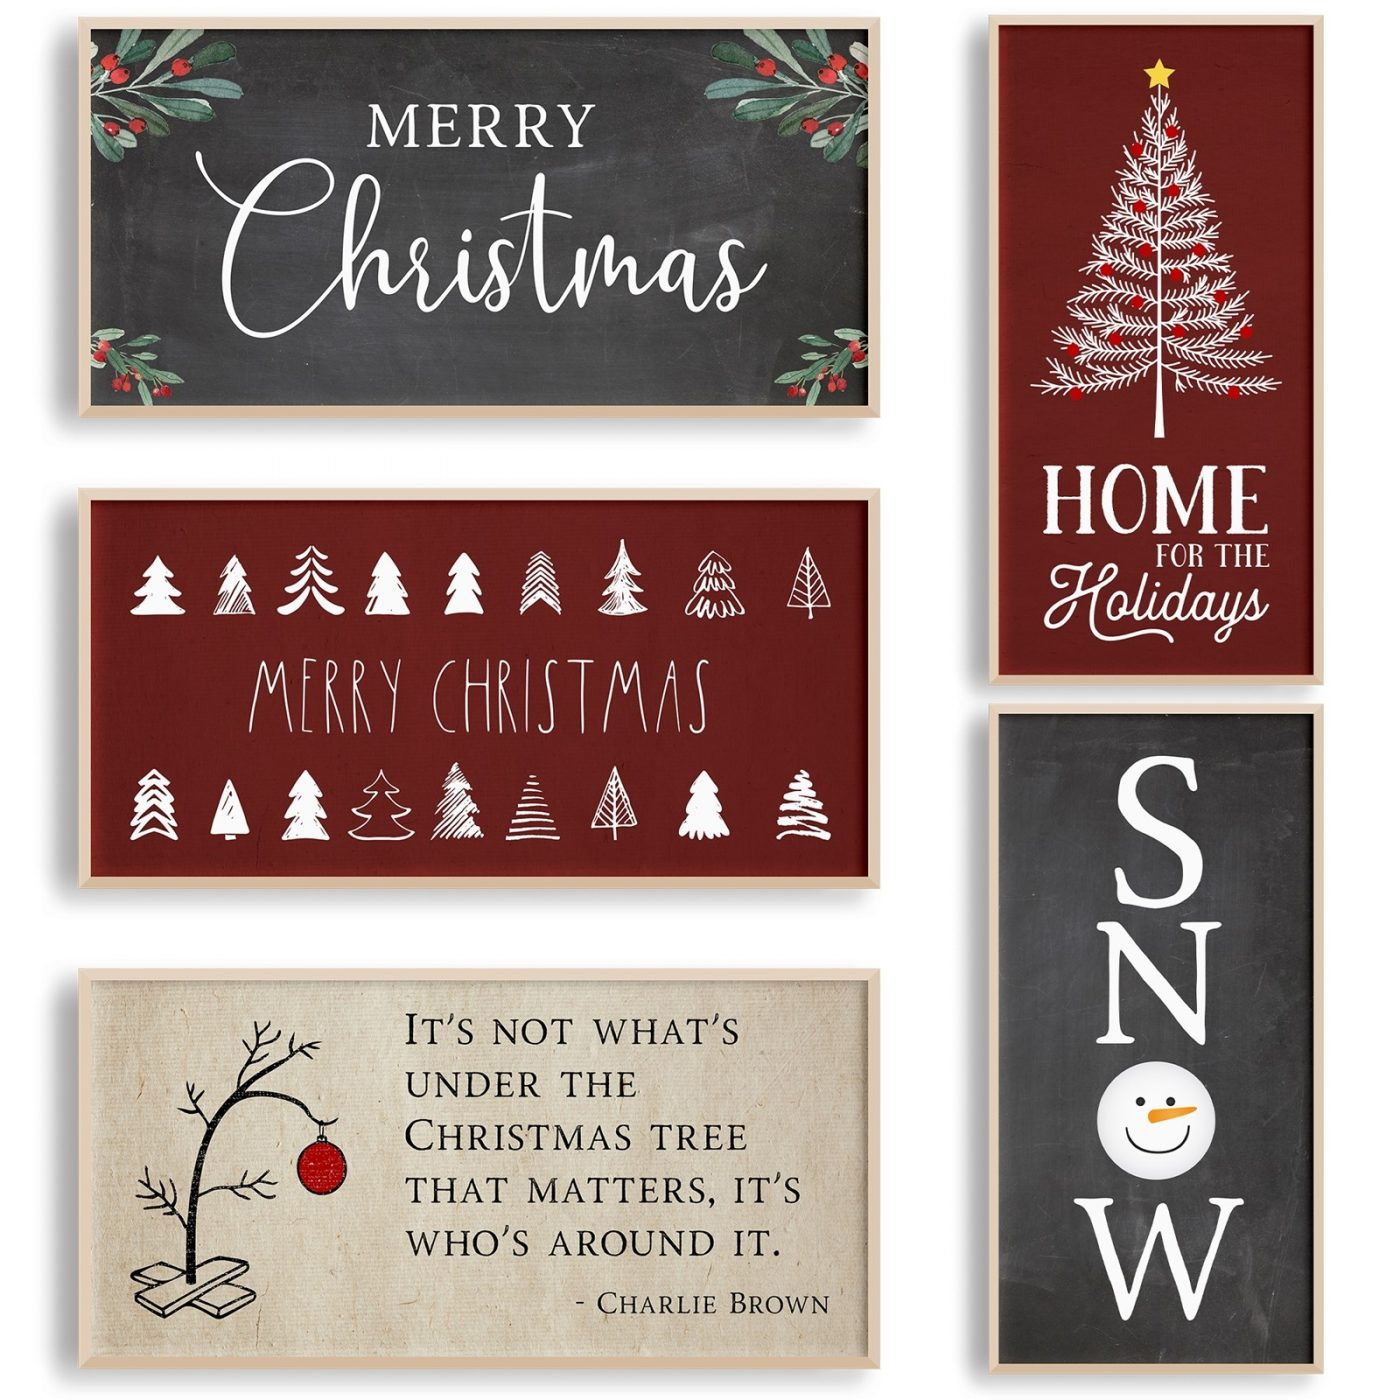 Was $39.99 - Now $14.99 - Large Christmas Sign Posters | Free Shipping (10/15 to 10/17)